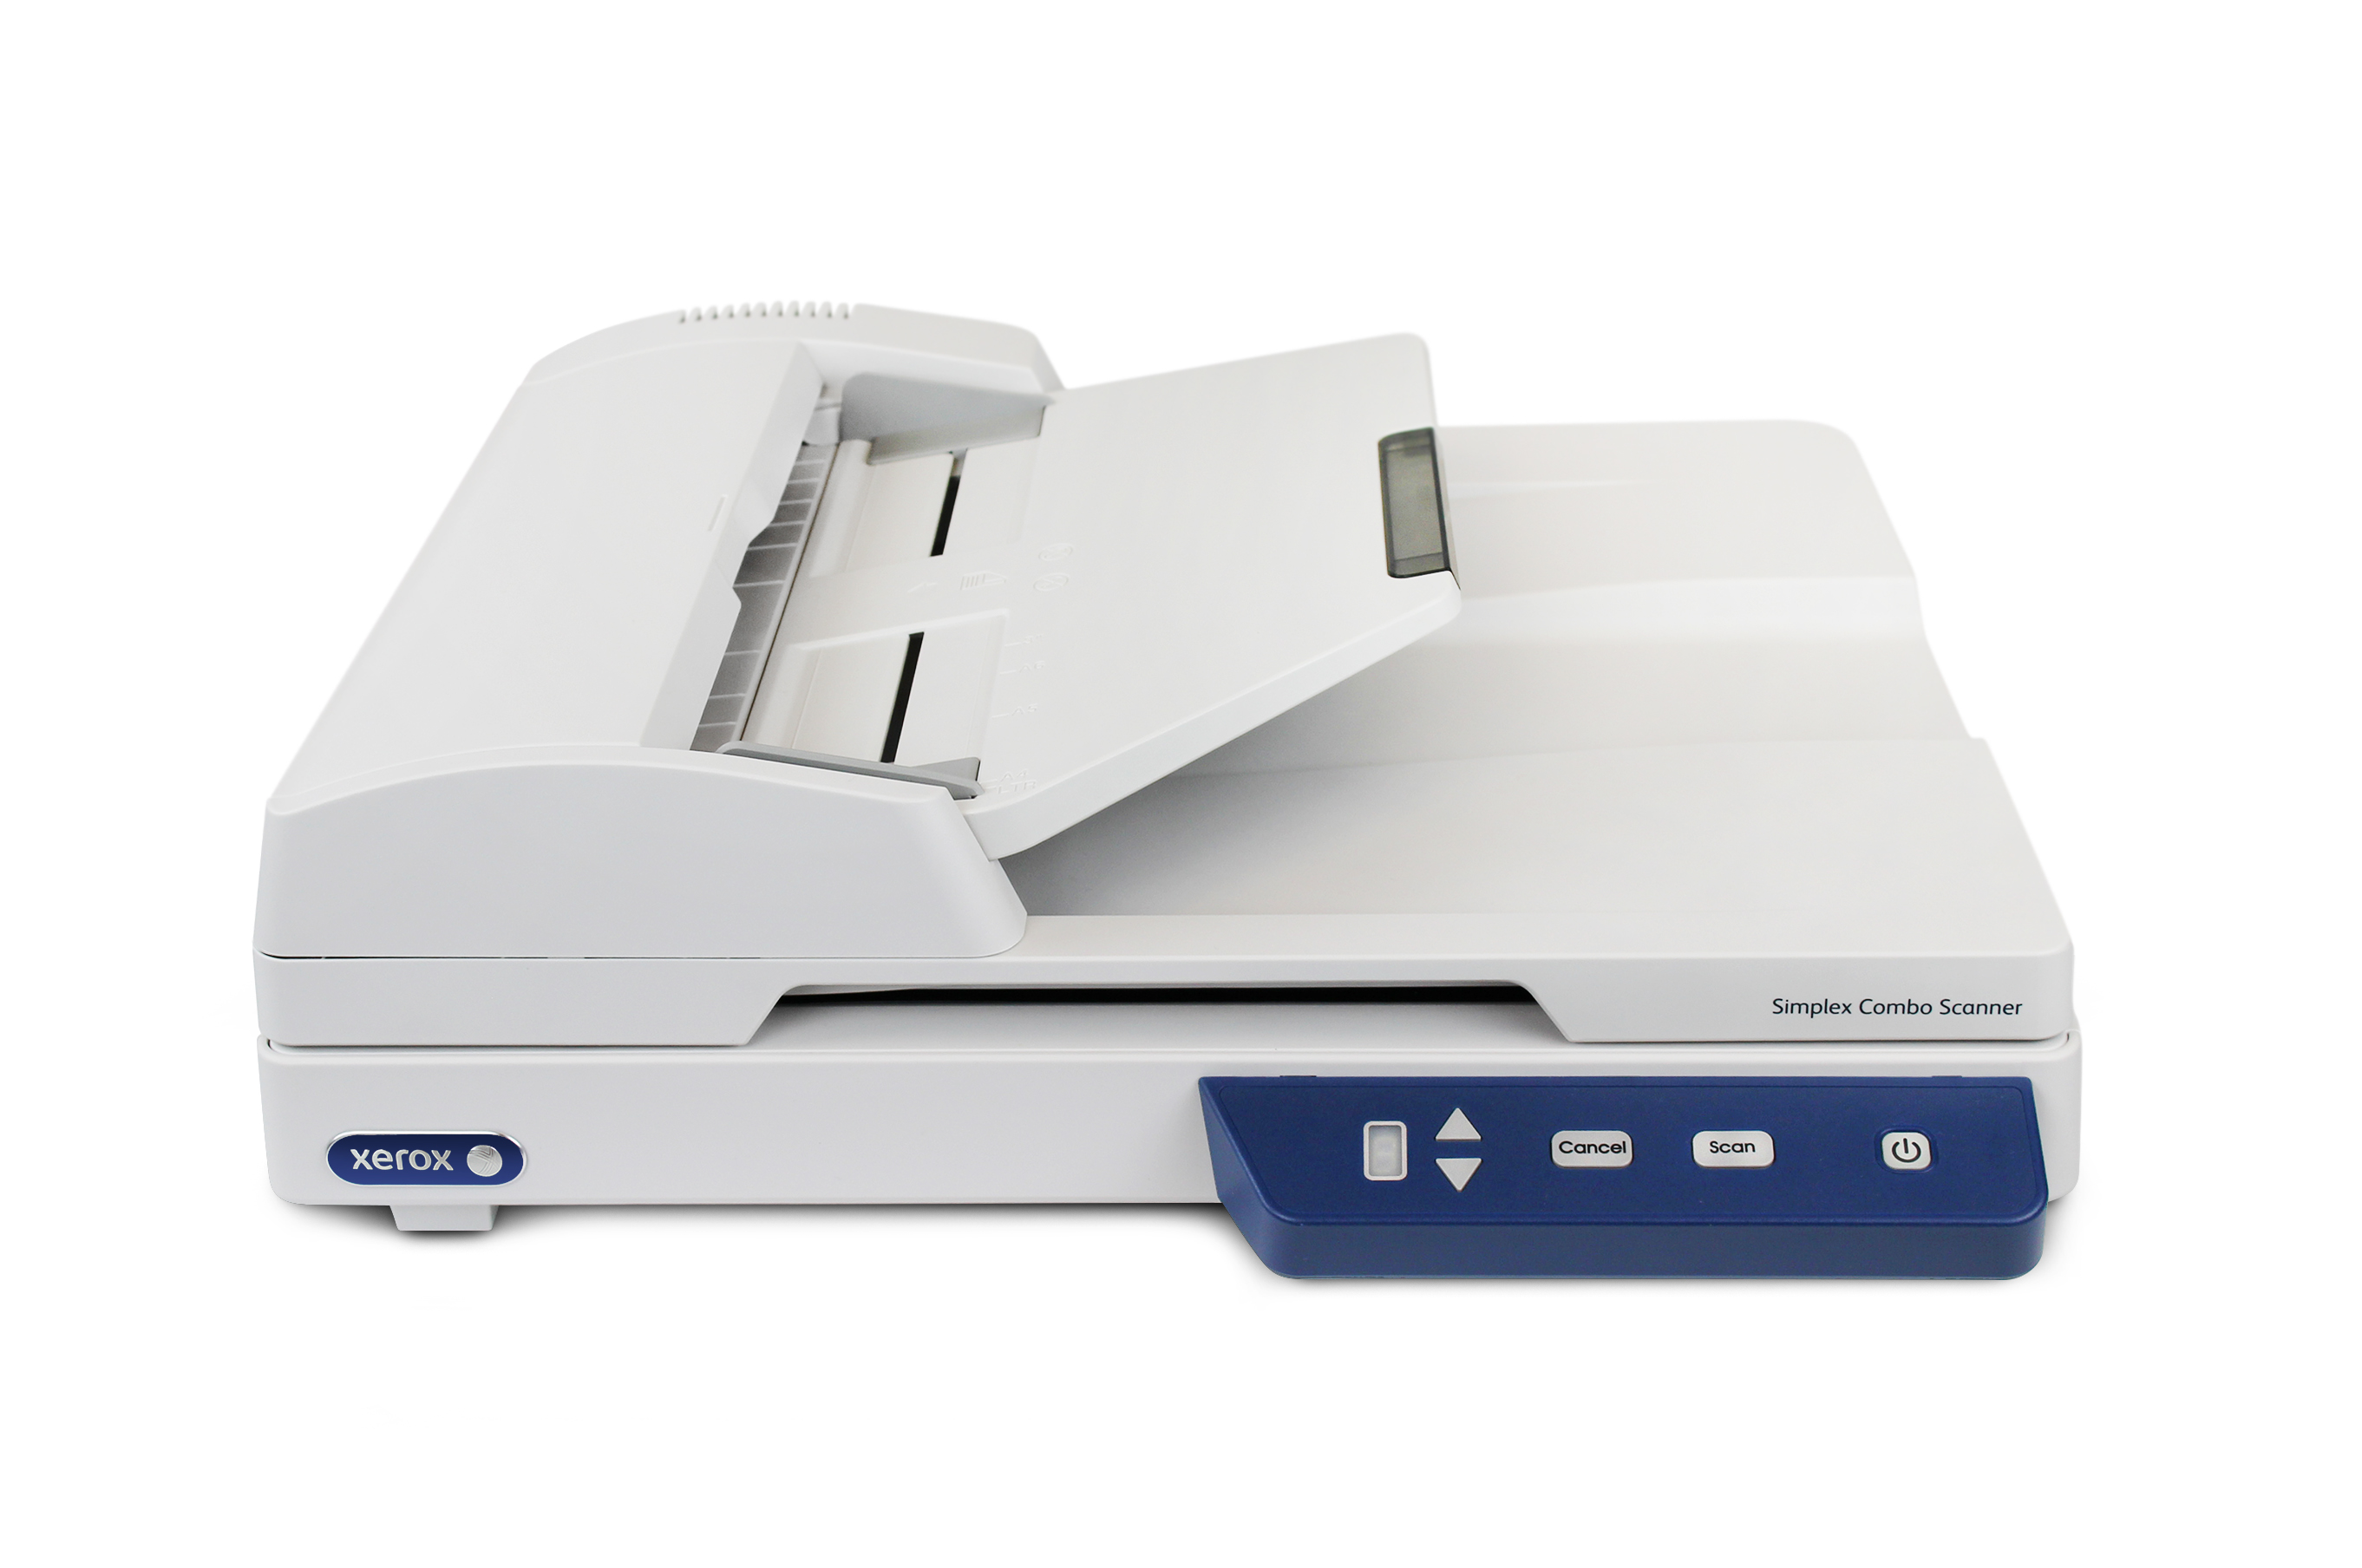 CANON CANOSCAN LIDE 200 SCANNER ICA DRIVERS FOR WINDOWS 7